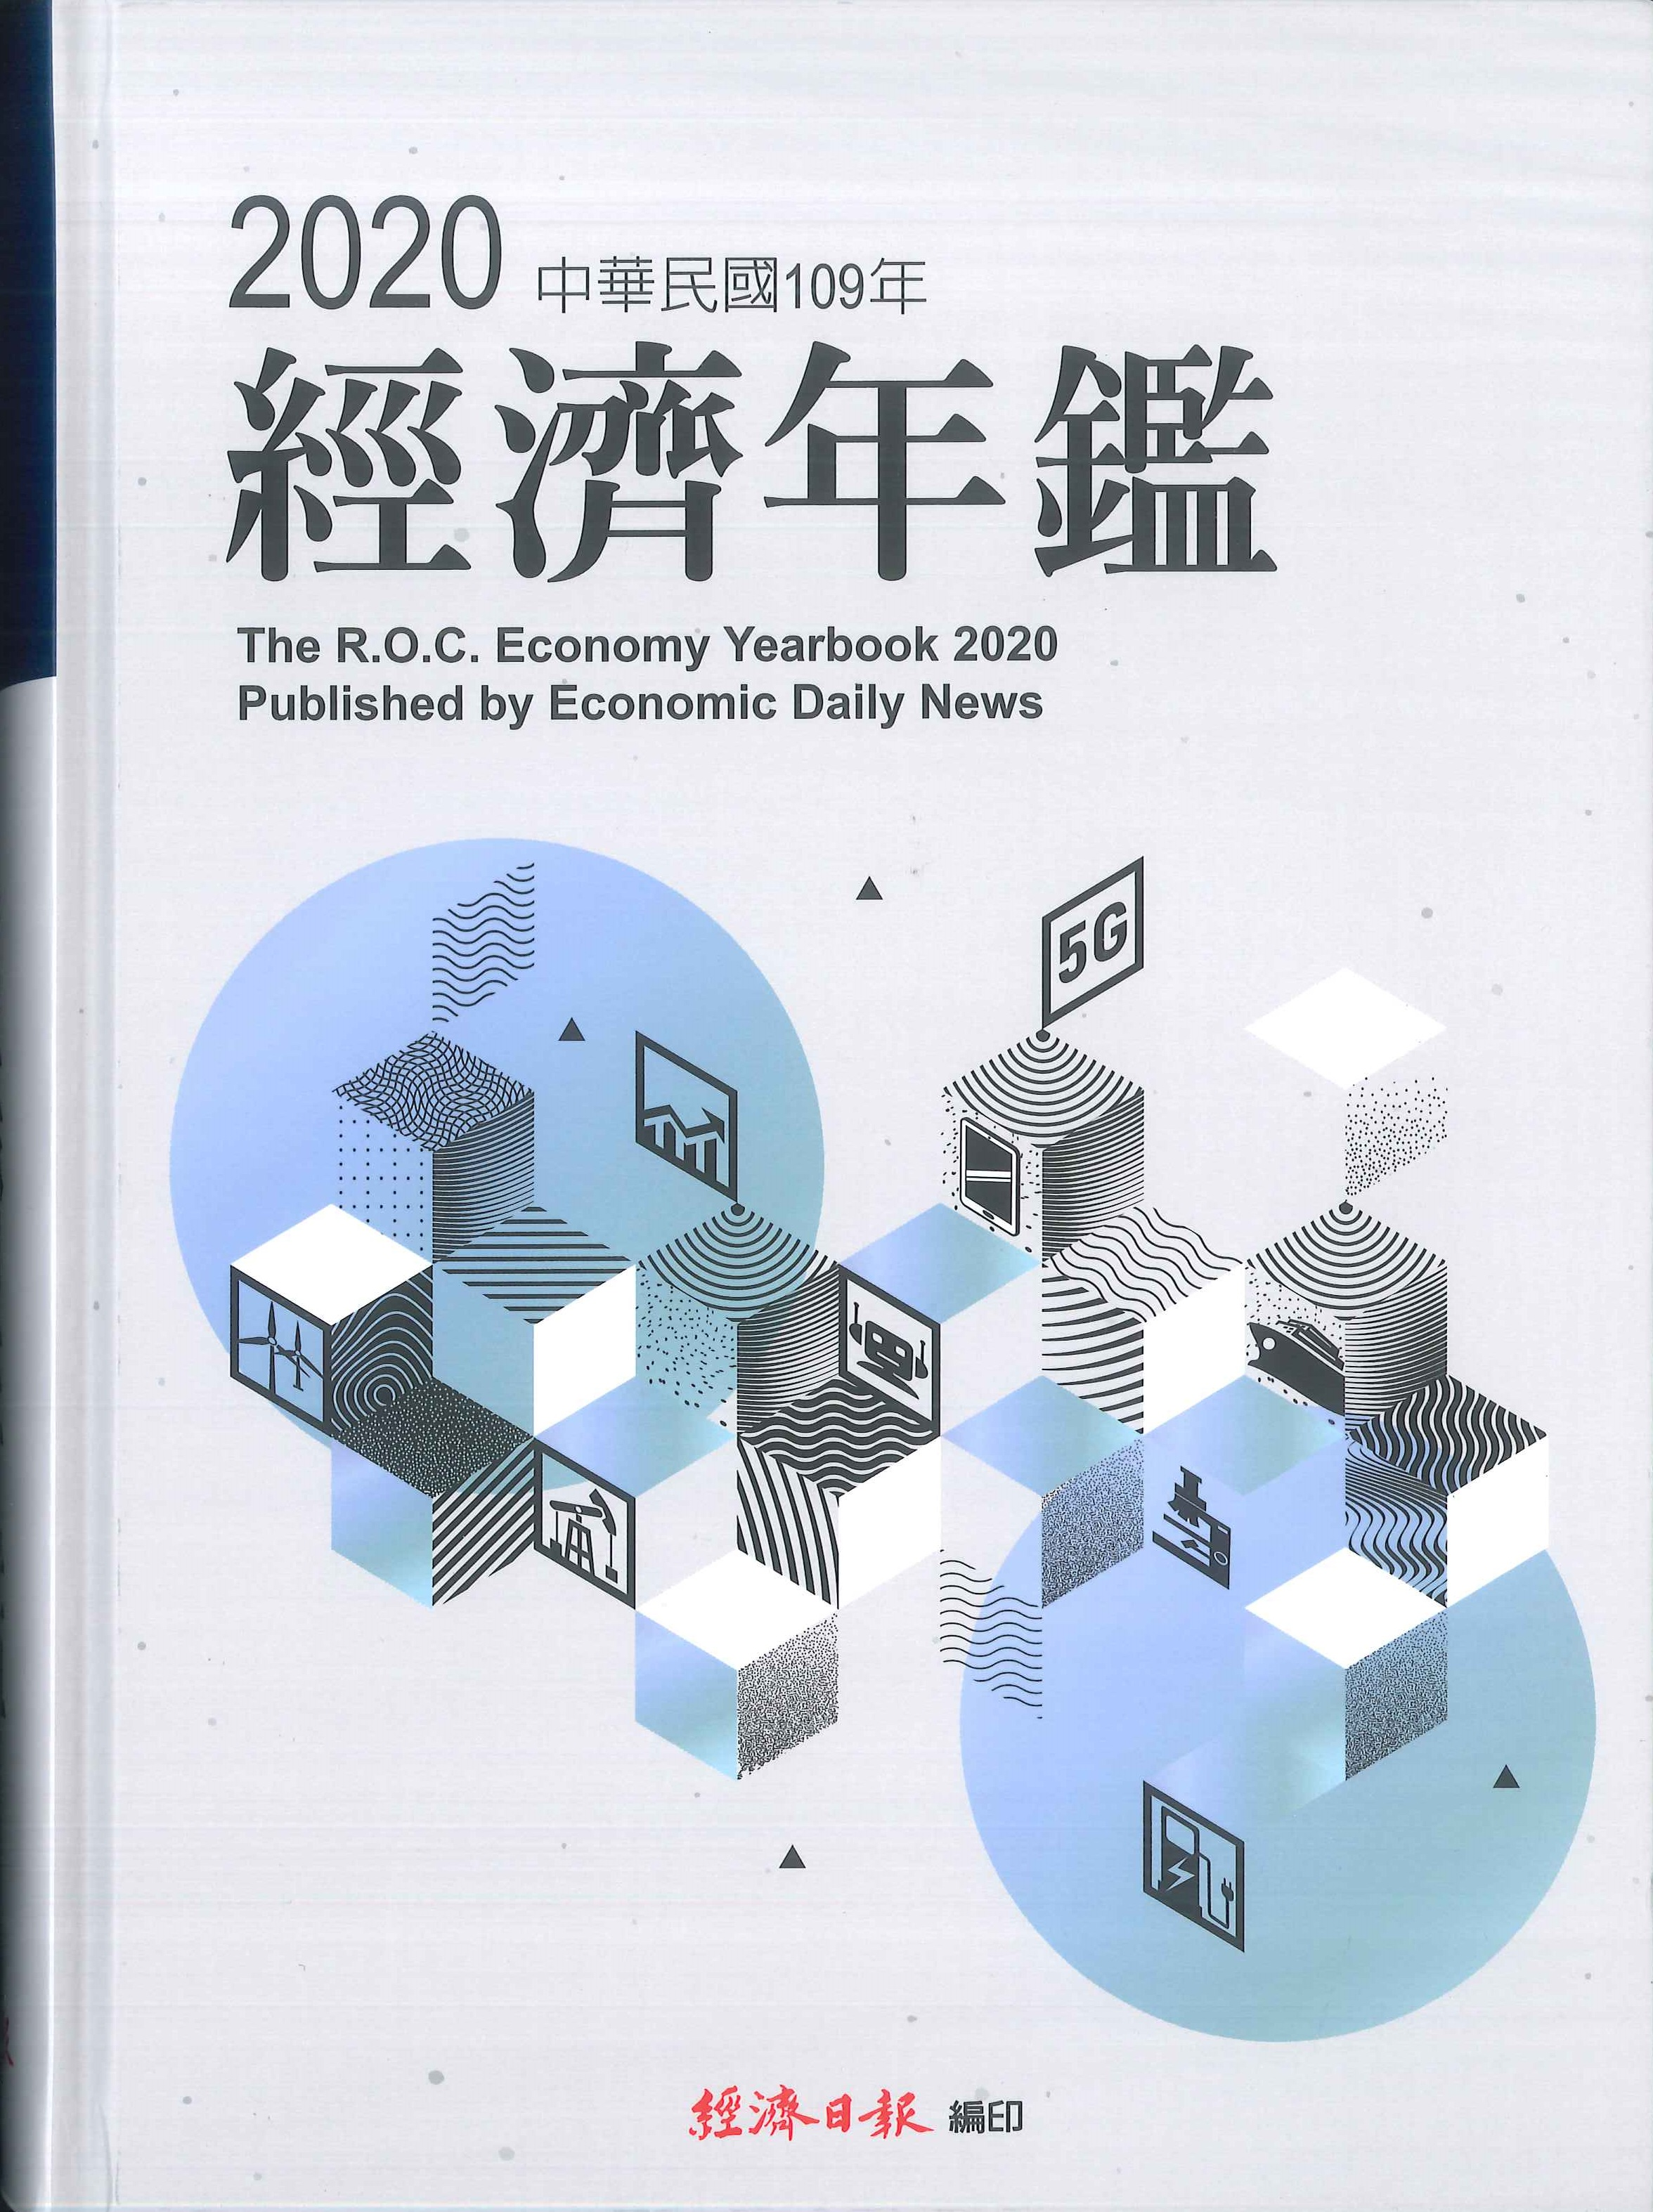 中華民國經濟年鑑=The R.O.C. economic yearbook